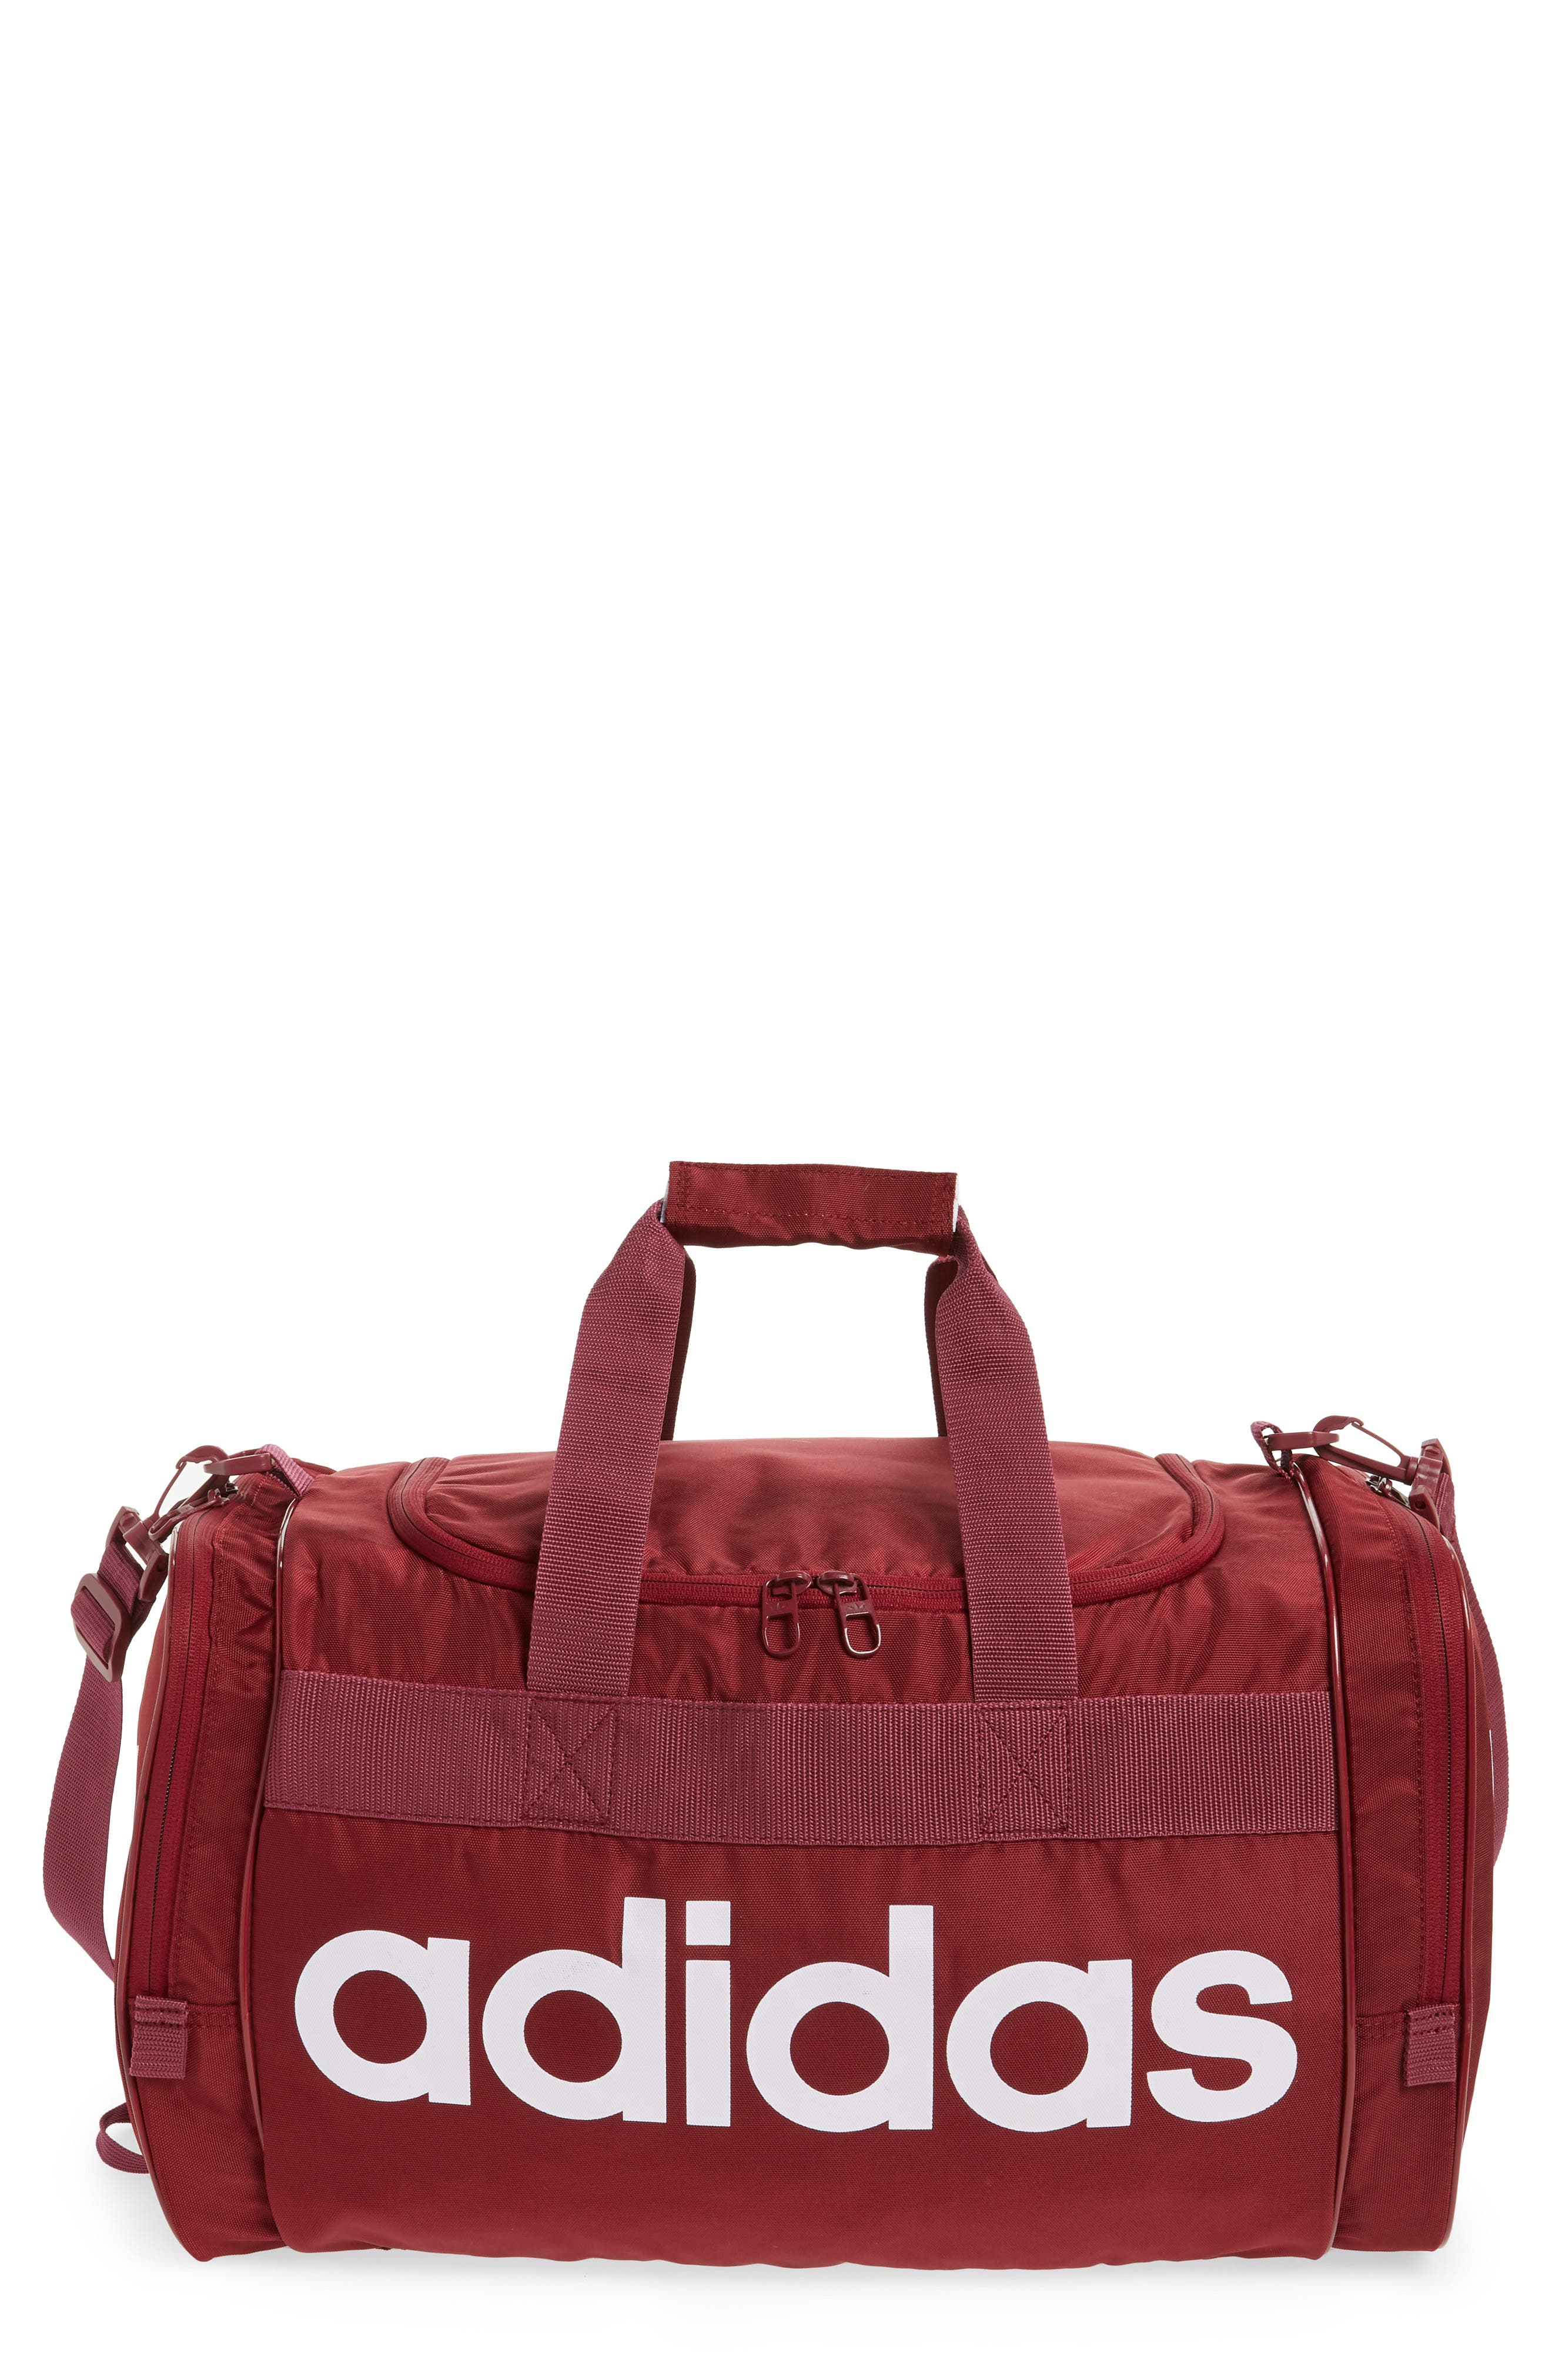 adidas Original Santiago Duffel Bag,                         Main,                         color, COLLEGIATE BURGUNDY/ WHITE